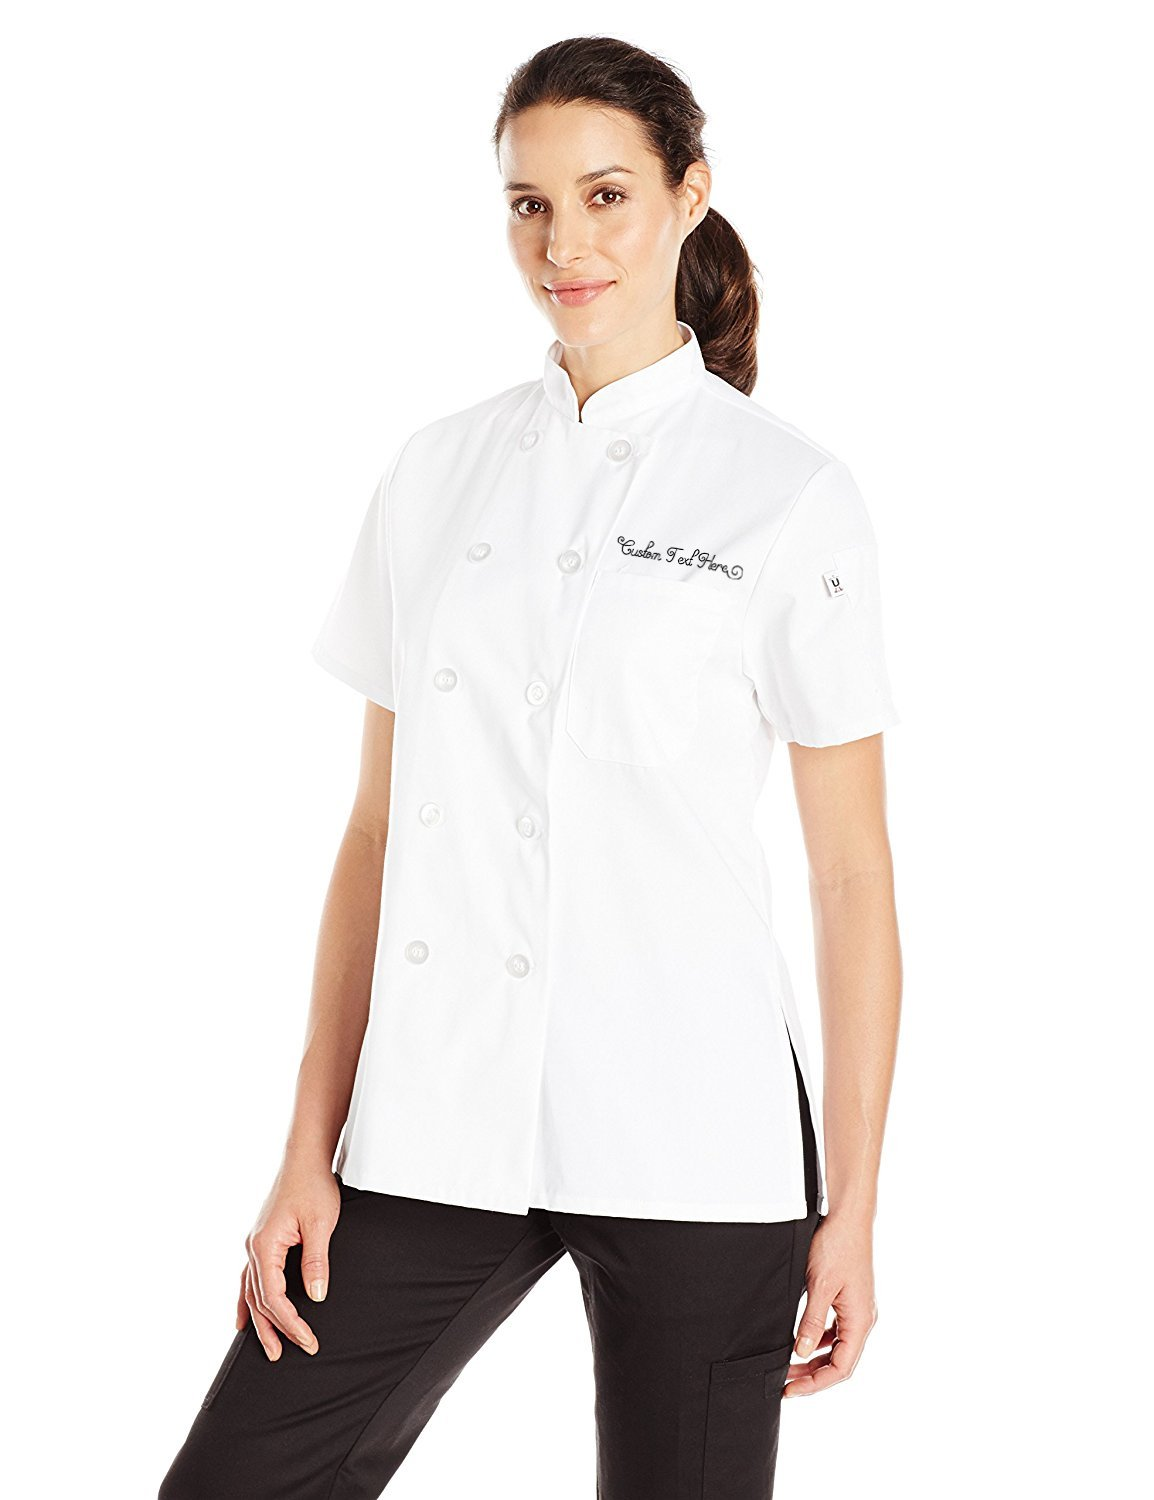 Uncommon Threads Women's Tahoe Fit Chef Coat with Custom Text, White, Small